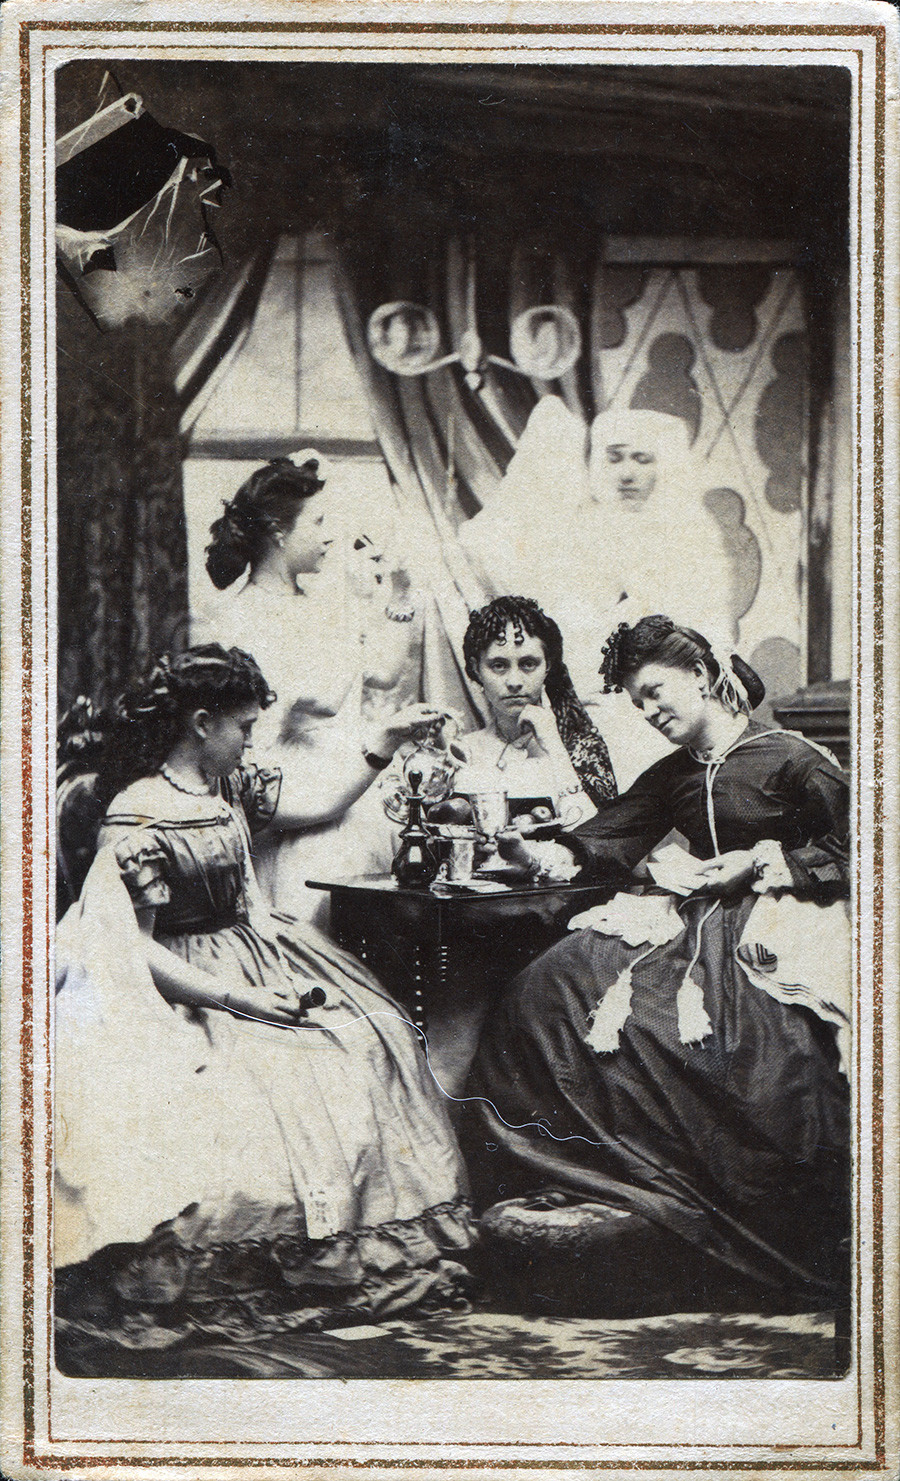 A group of young women meeting in a parlor. A ghostly figure is pictured in the background, Lowville, New York, circa 1860